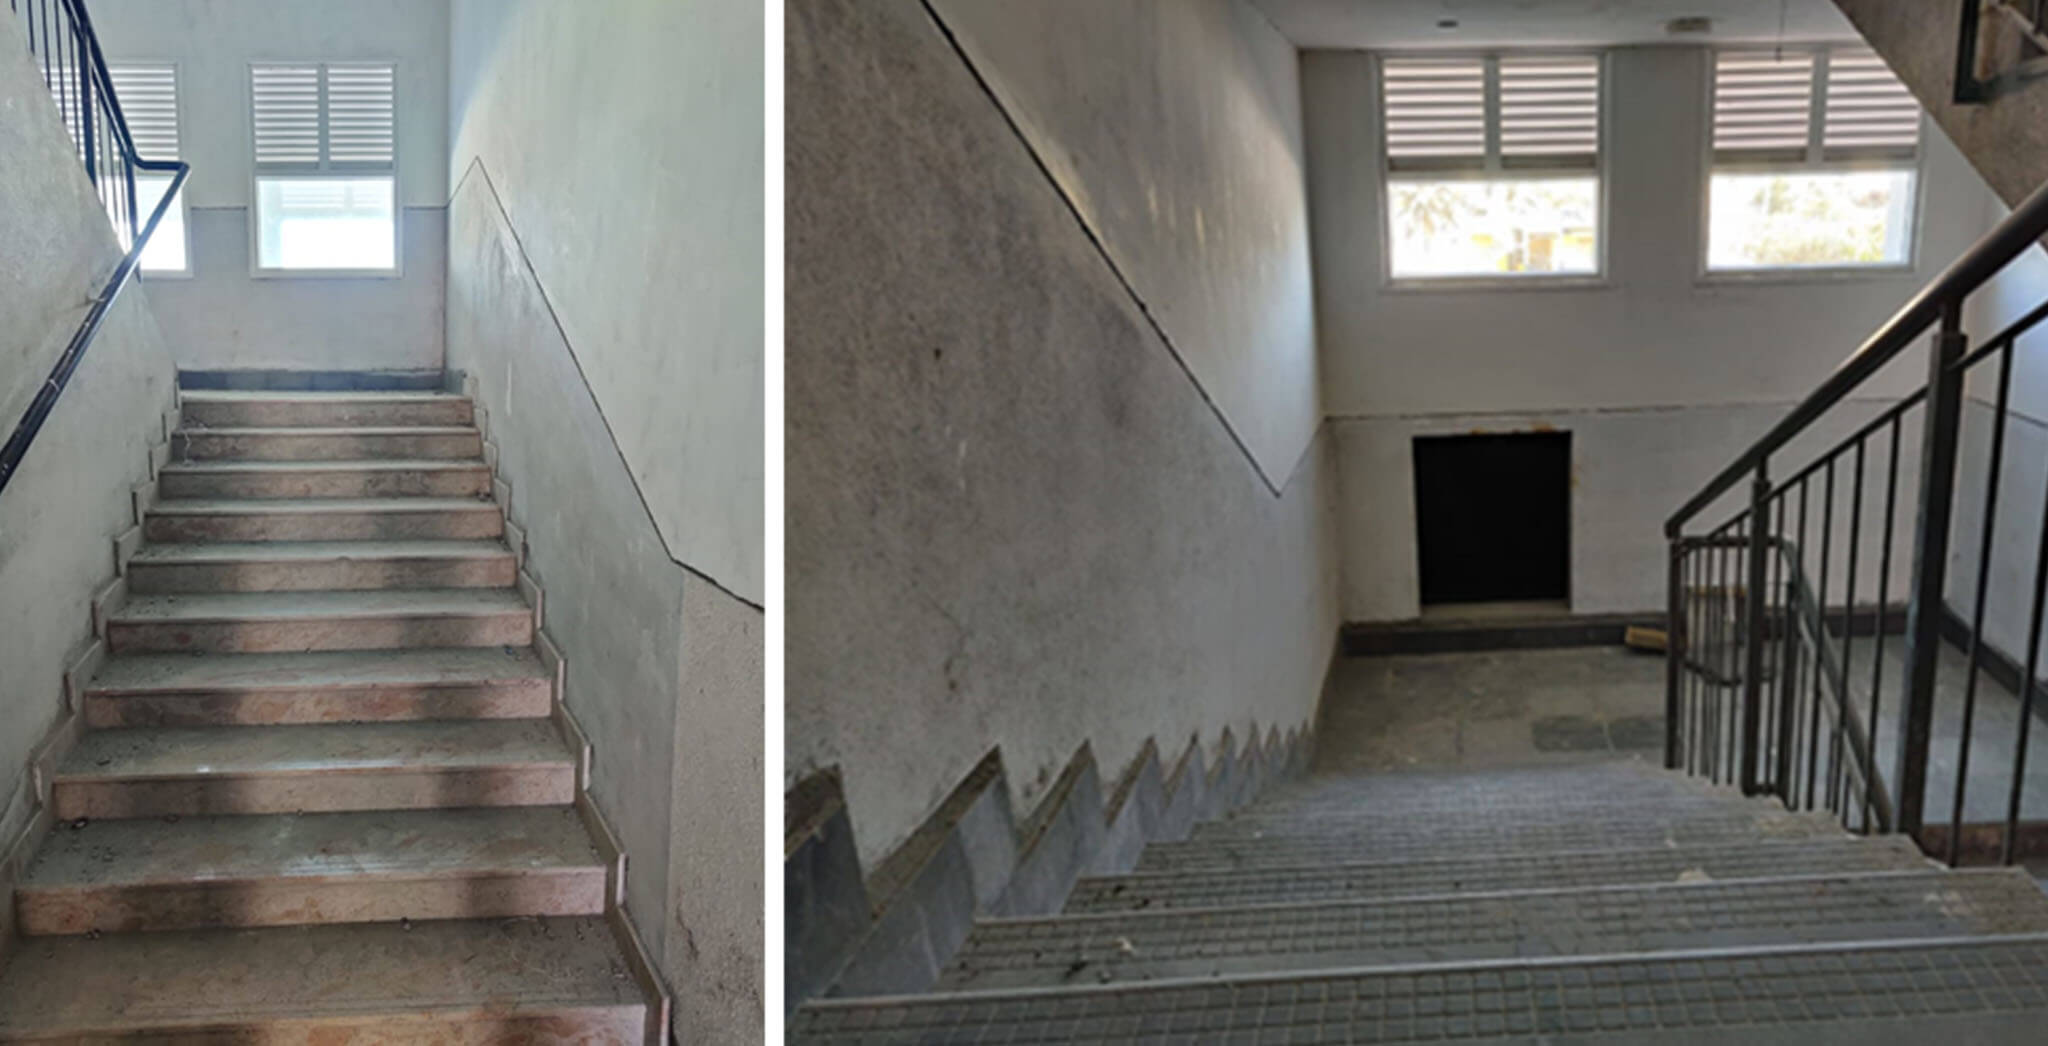 Feb 2021 - Staircase area: Painting work